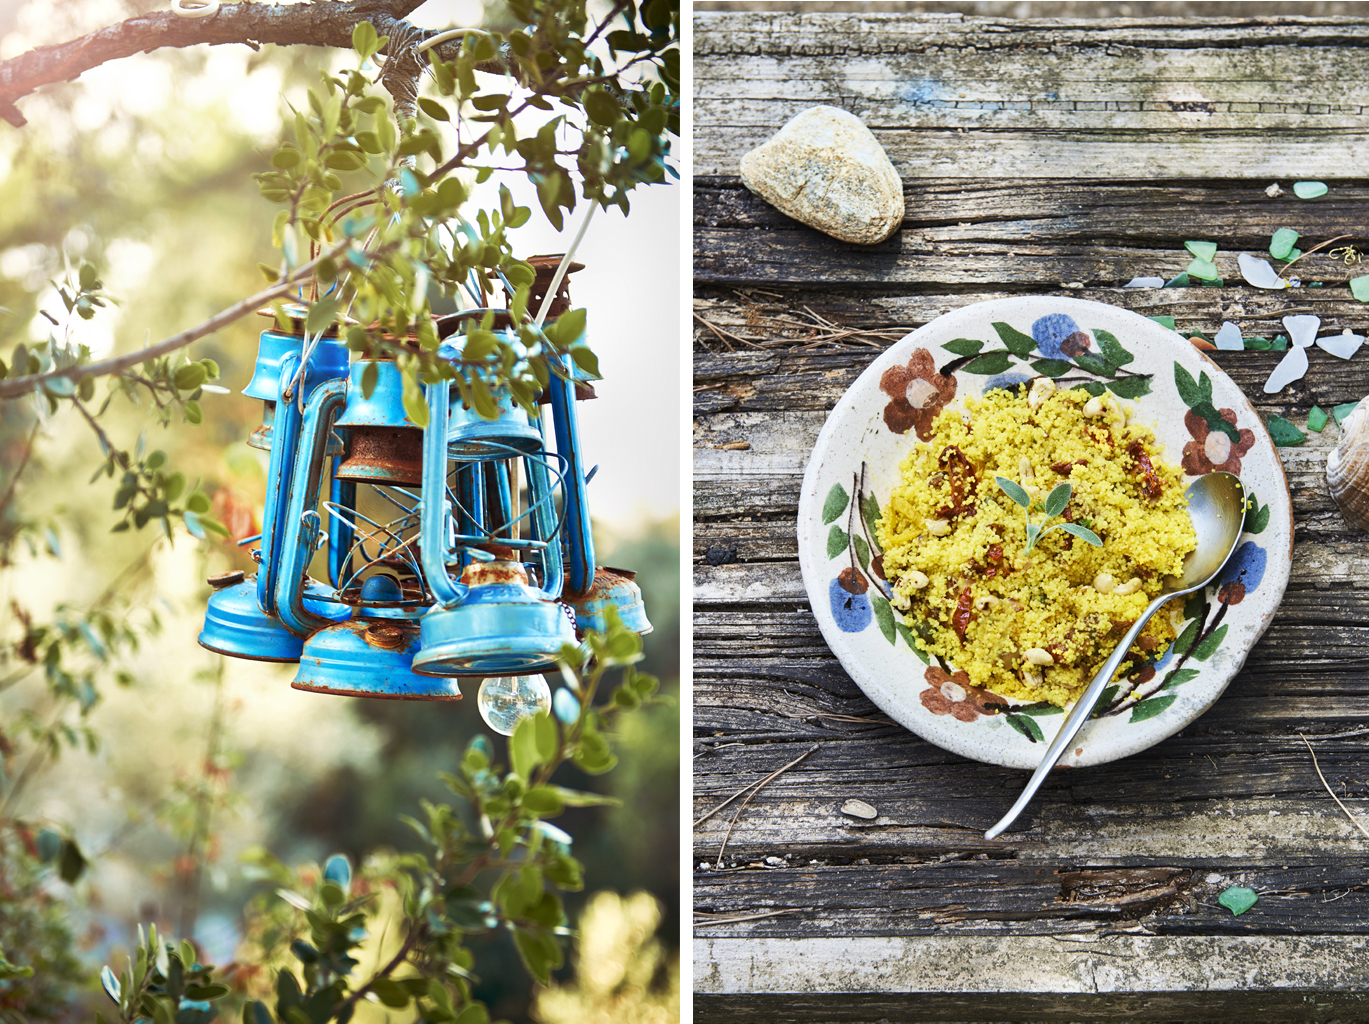 Corne's Cous Cous Lanterns trees cookbook recipe rustic trees daylight book retreat sunshine trees bowl spoon sage sundries tomatoes food photographer food photography london still life photographer britain